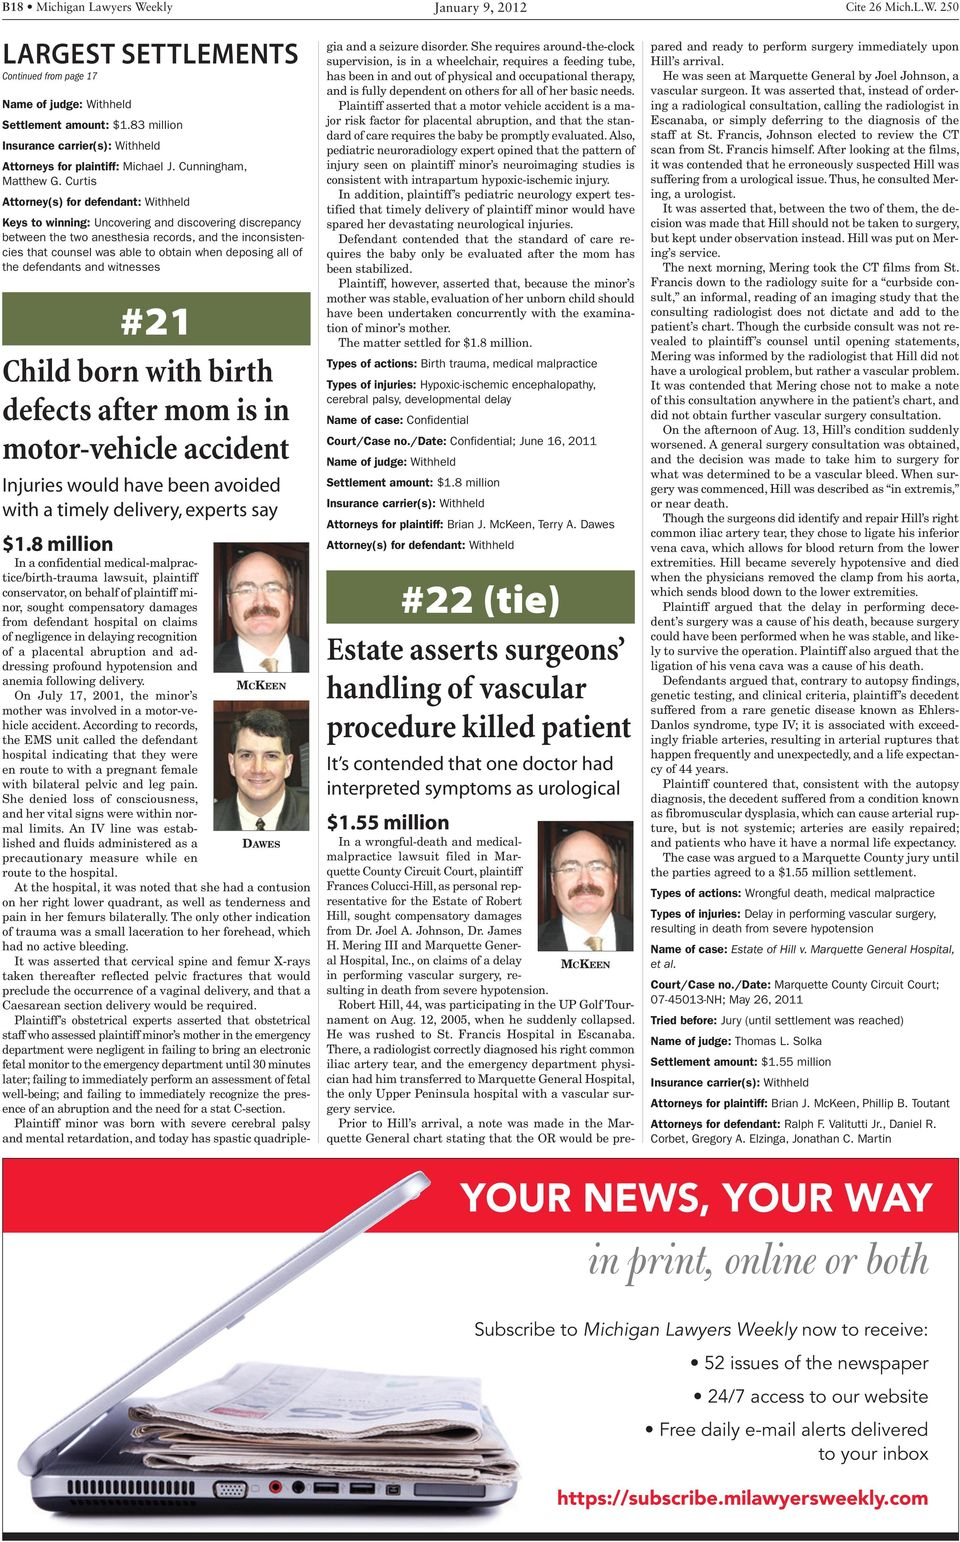 witnesses #21 Child born with birth defects after mom is in motor-vehicle accident Injuries would have been avoided with a timely delivery, experts say $1.